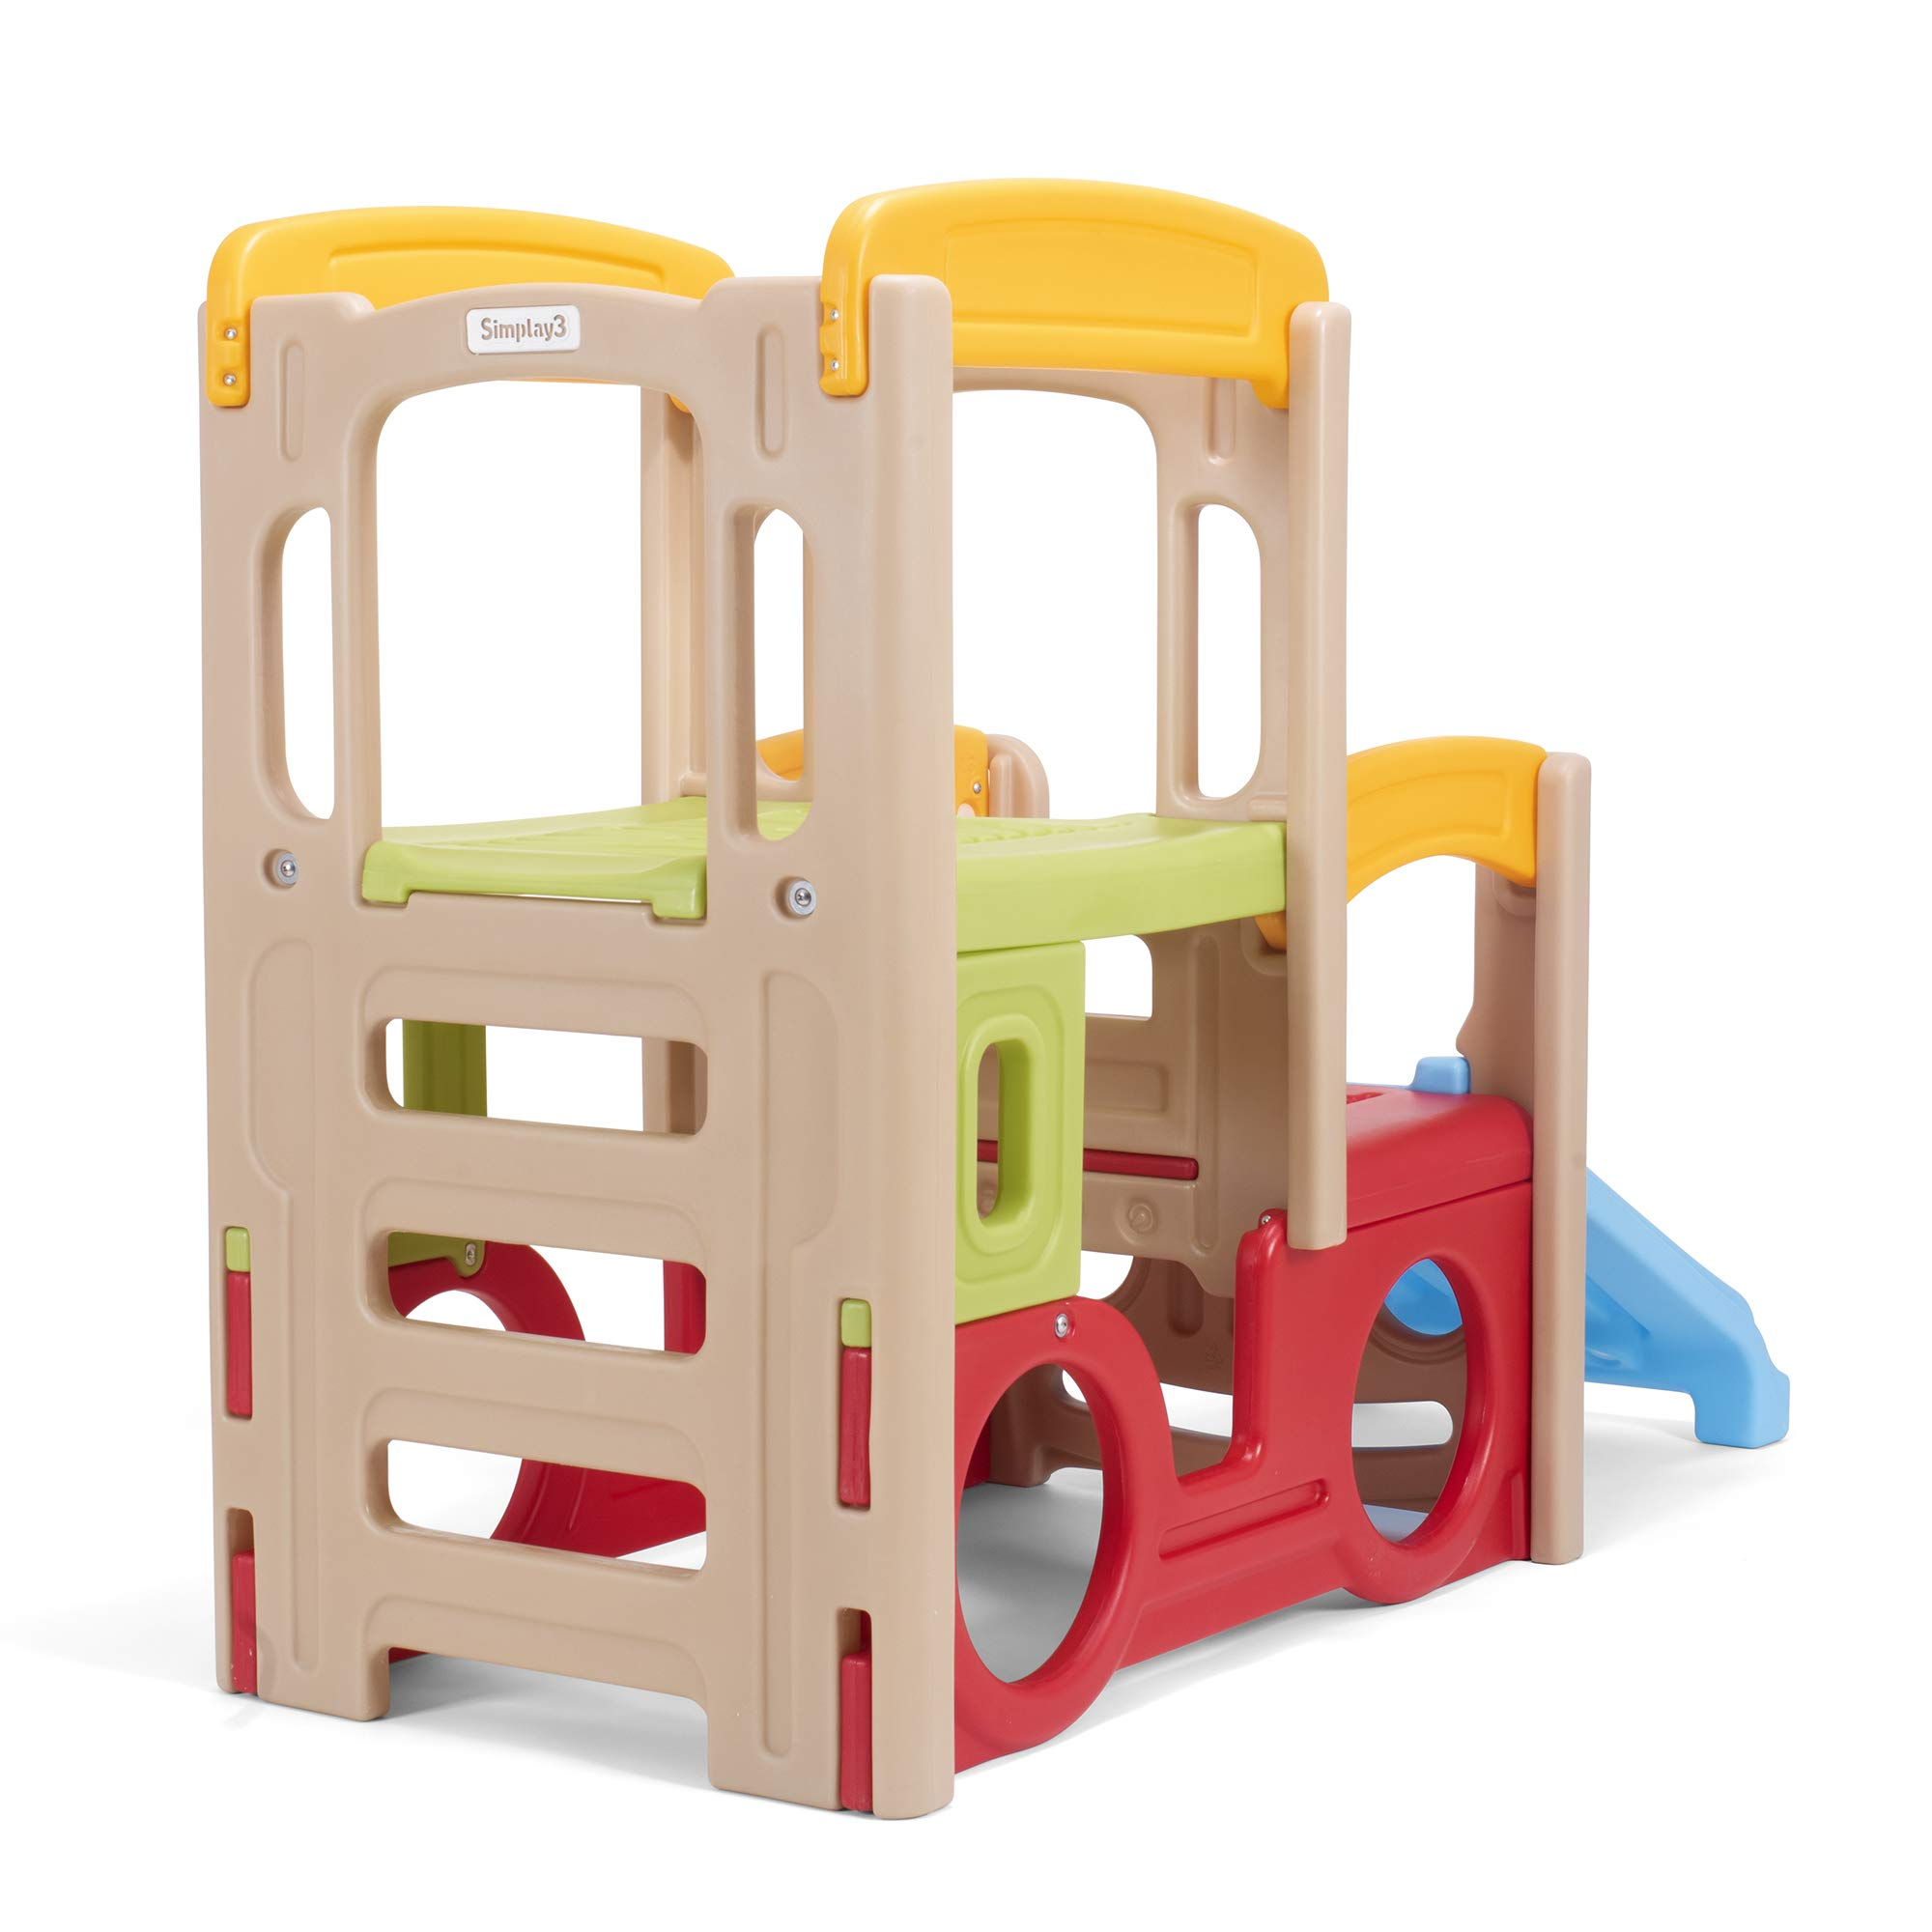 Simplay3 Young Explorers Adventure Climber - Indoor Outdoor Crawl Climb Drive Slide Playset for Children by Simplay3 (Image #6)